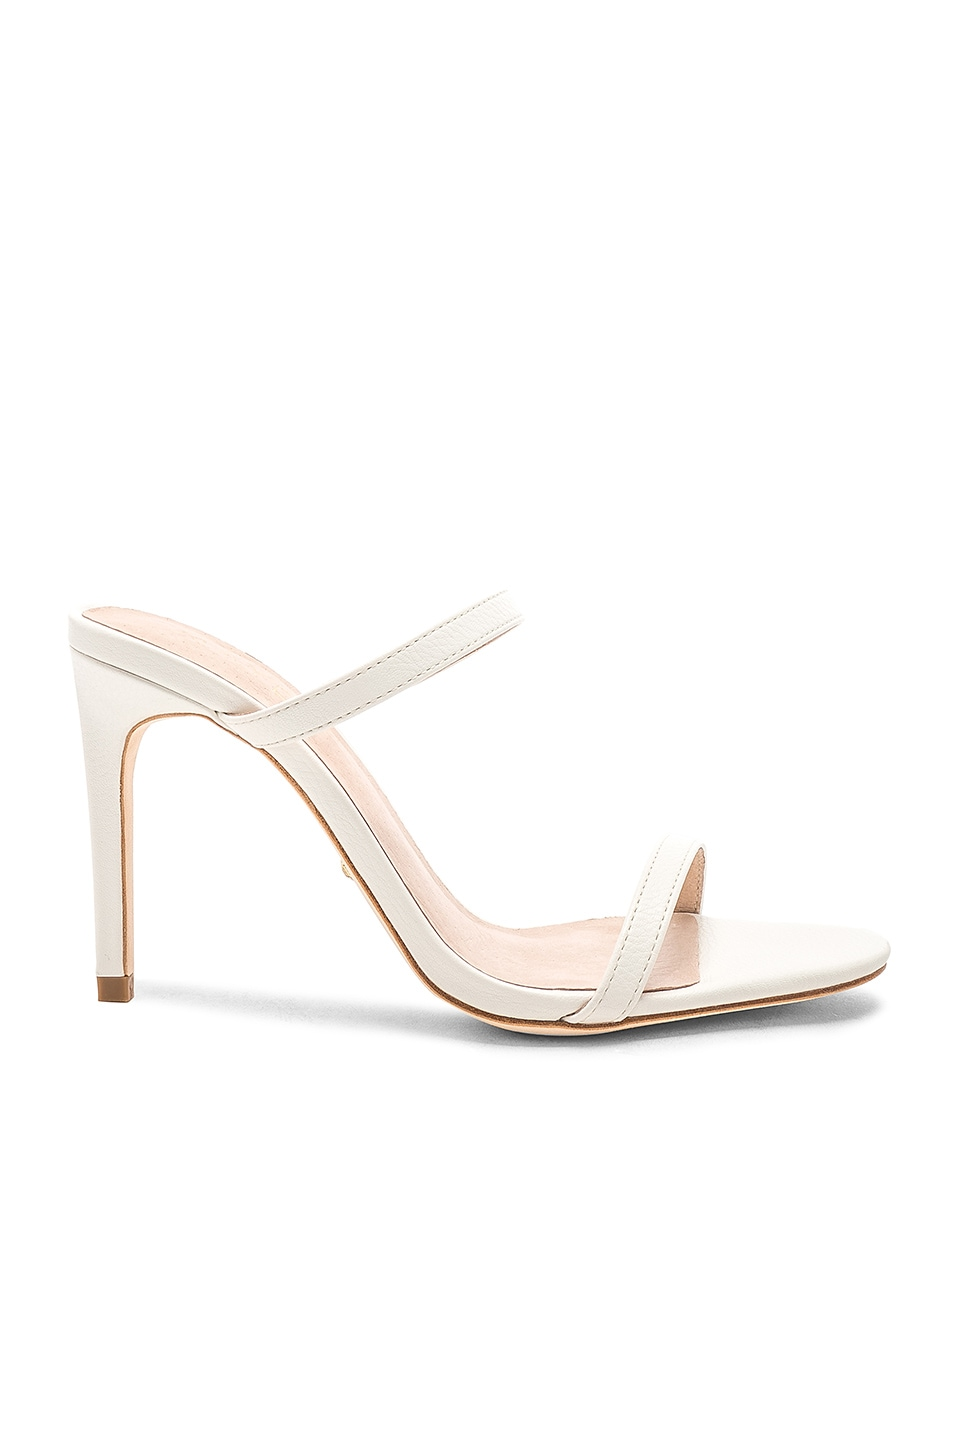 RAYE Nina Heel in White